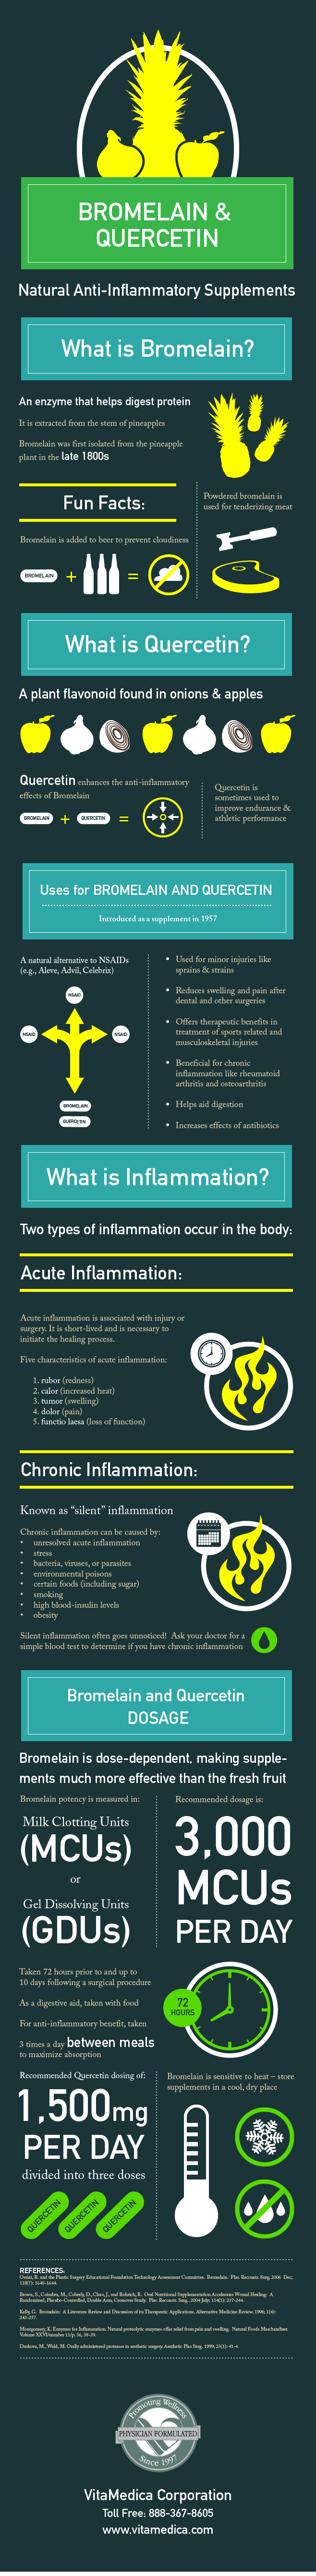 Bromelain and Quercetin: Natural Anti Inflammatory Supplements   Inflammation is the body's natural reaction to tissue damage.  But despite your bod